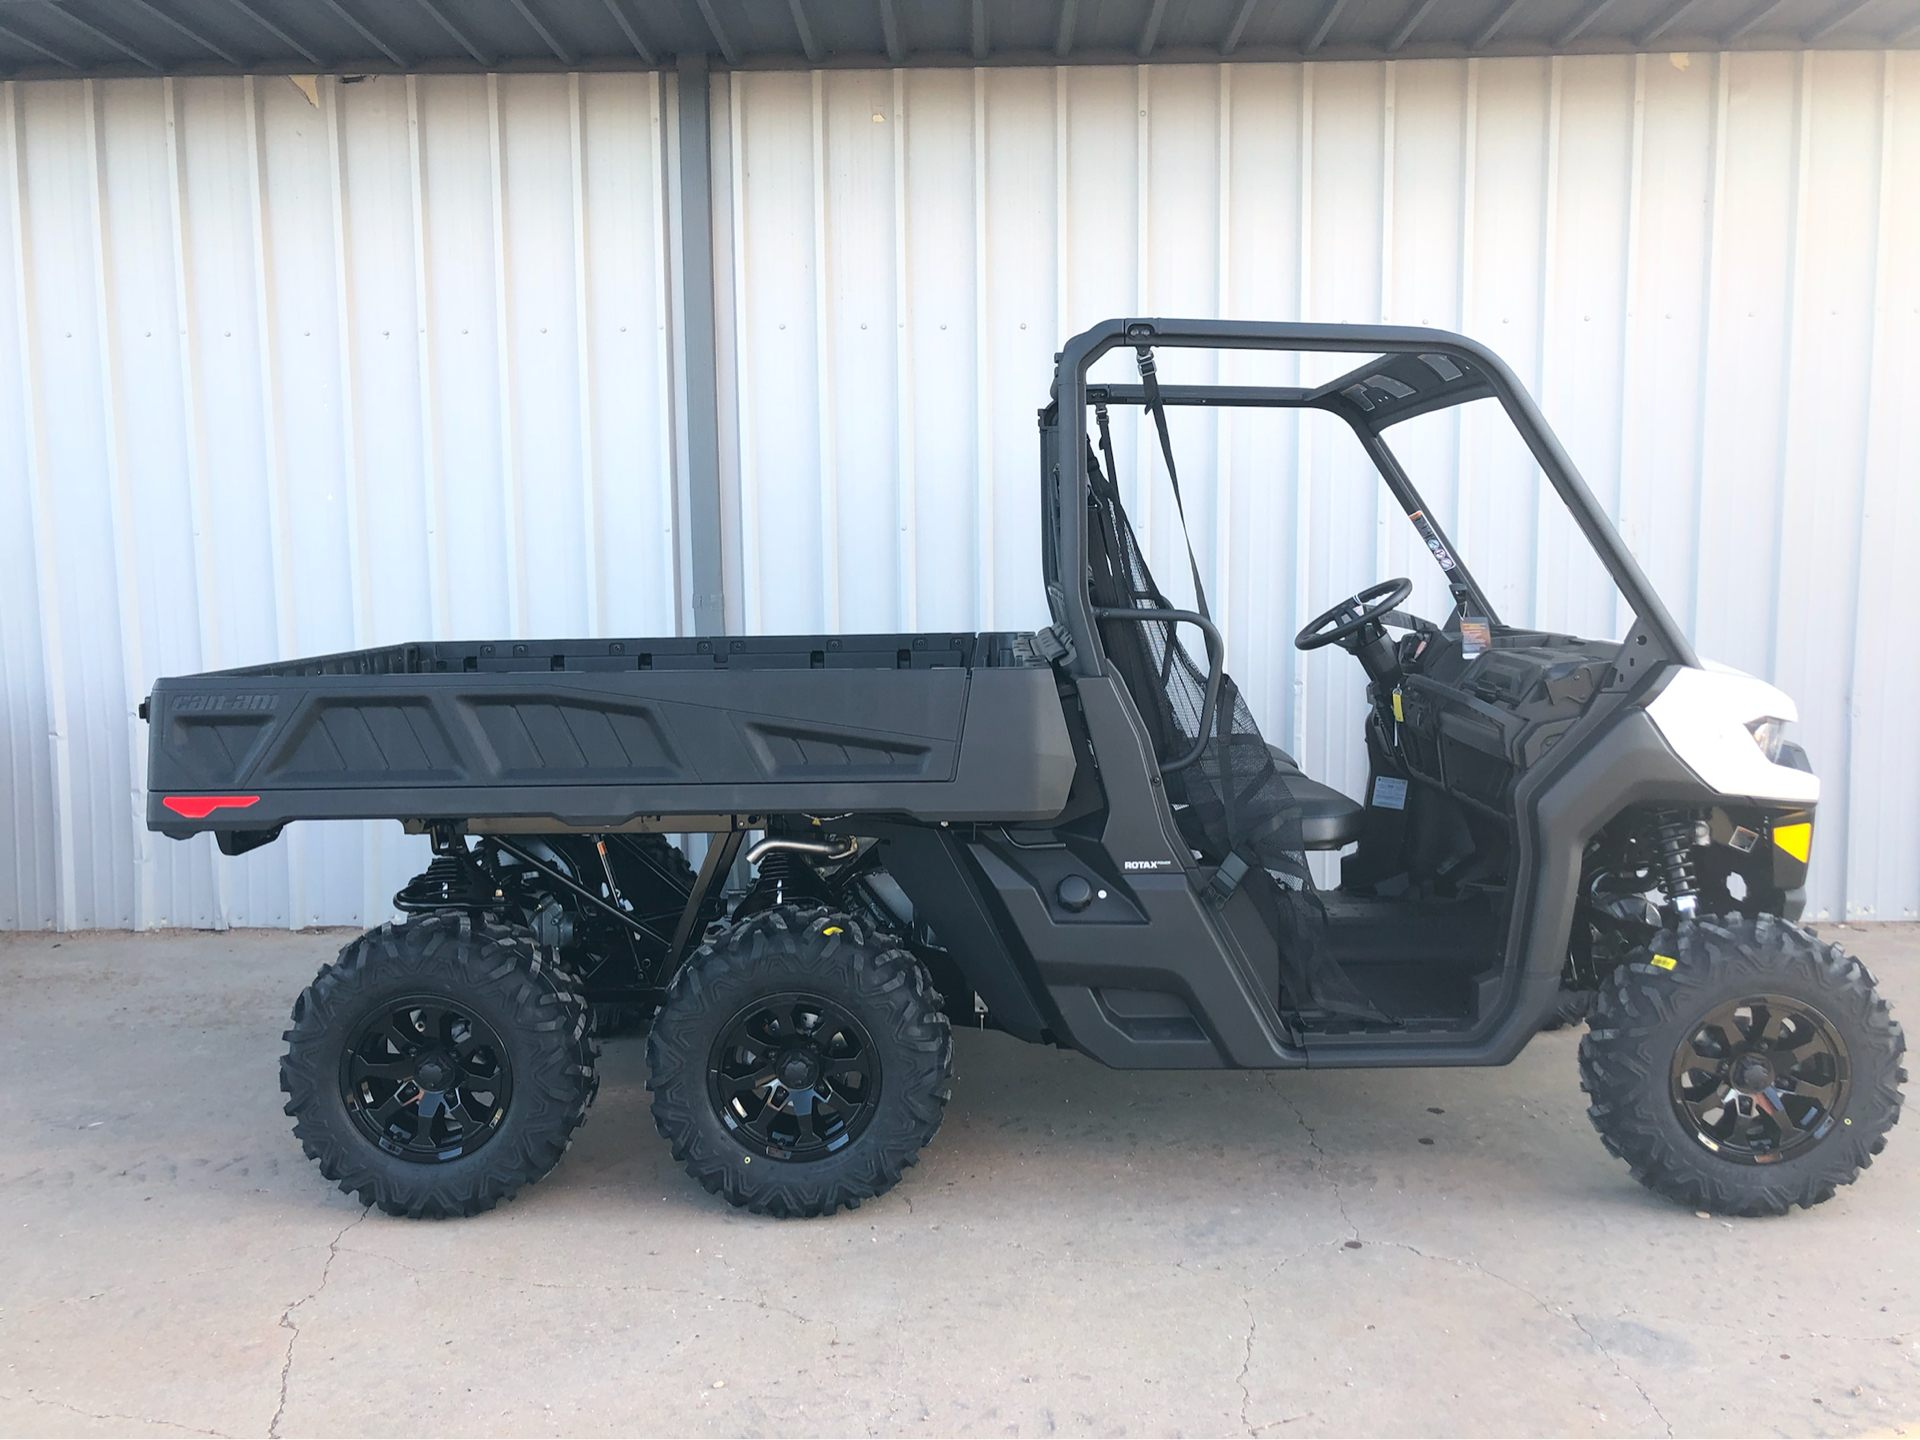 2020 Can-Am Defender 6x6 DPS HD10 in Amarillo, Texas - Photo 4